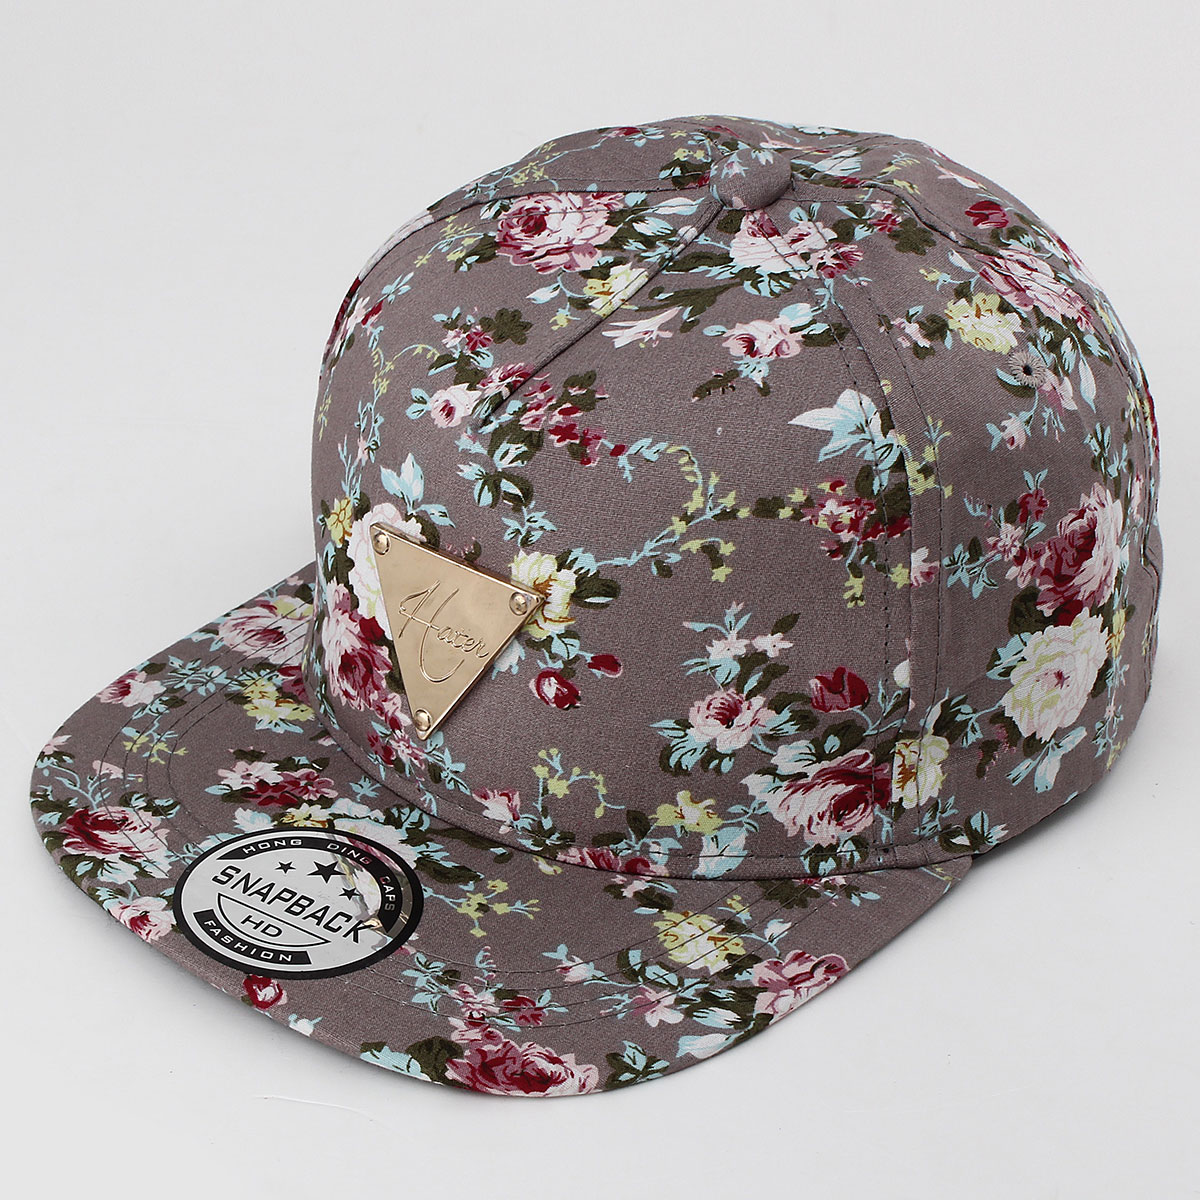 professional sale more photos first look Details about NEW Men Women Snapback Baseball Cap Hip Hop Hat Floral Letter  Adjustable Canvas